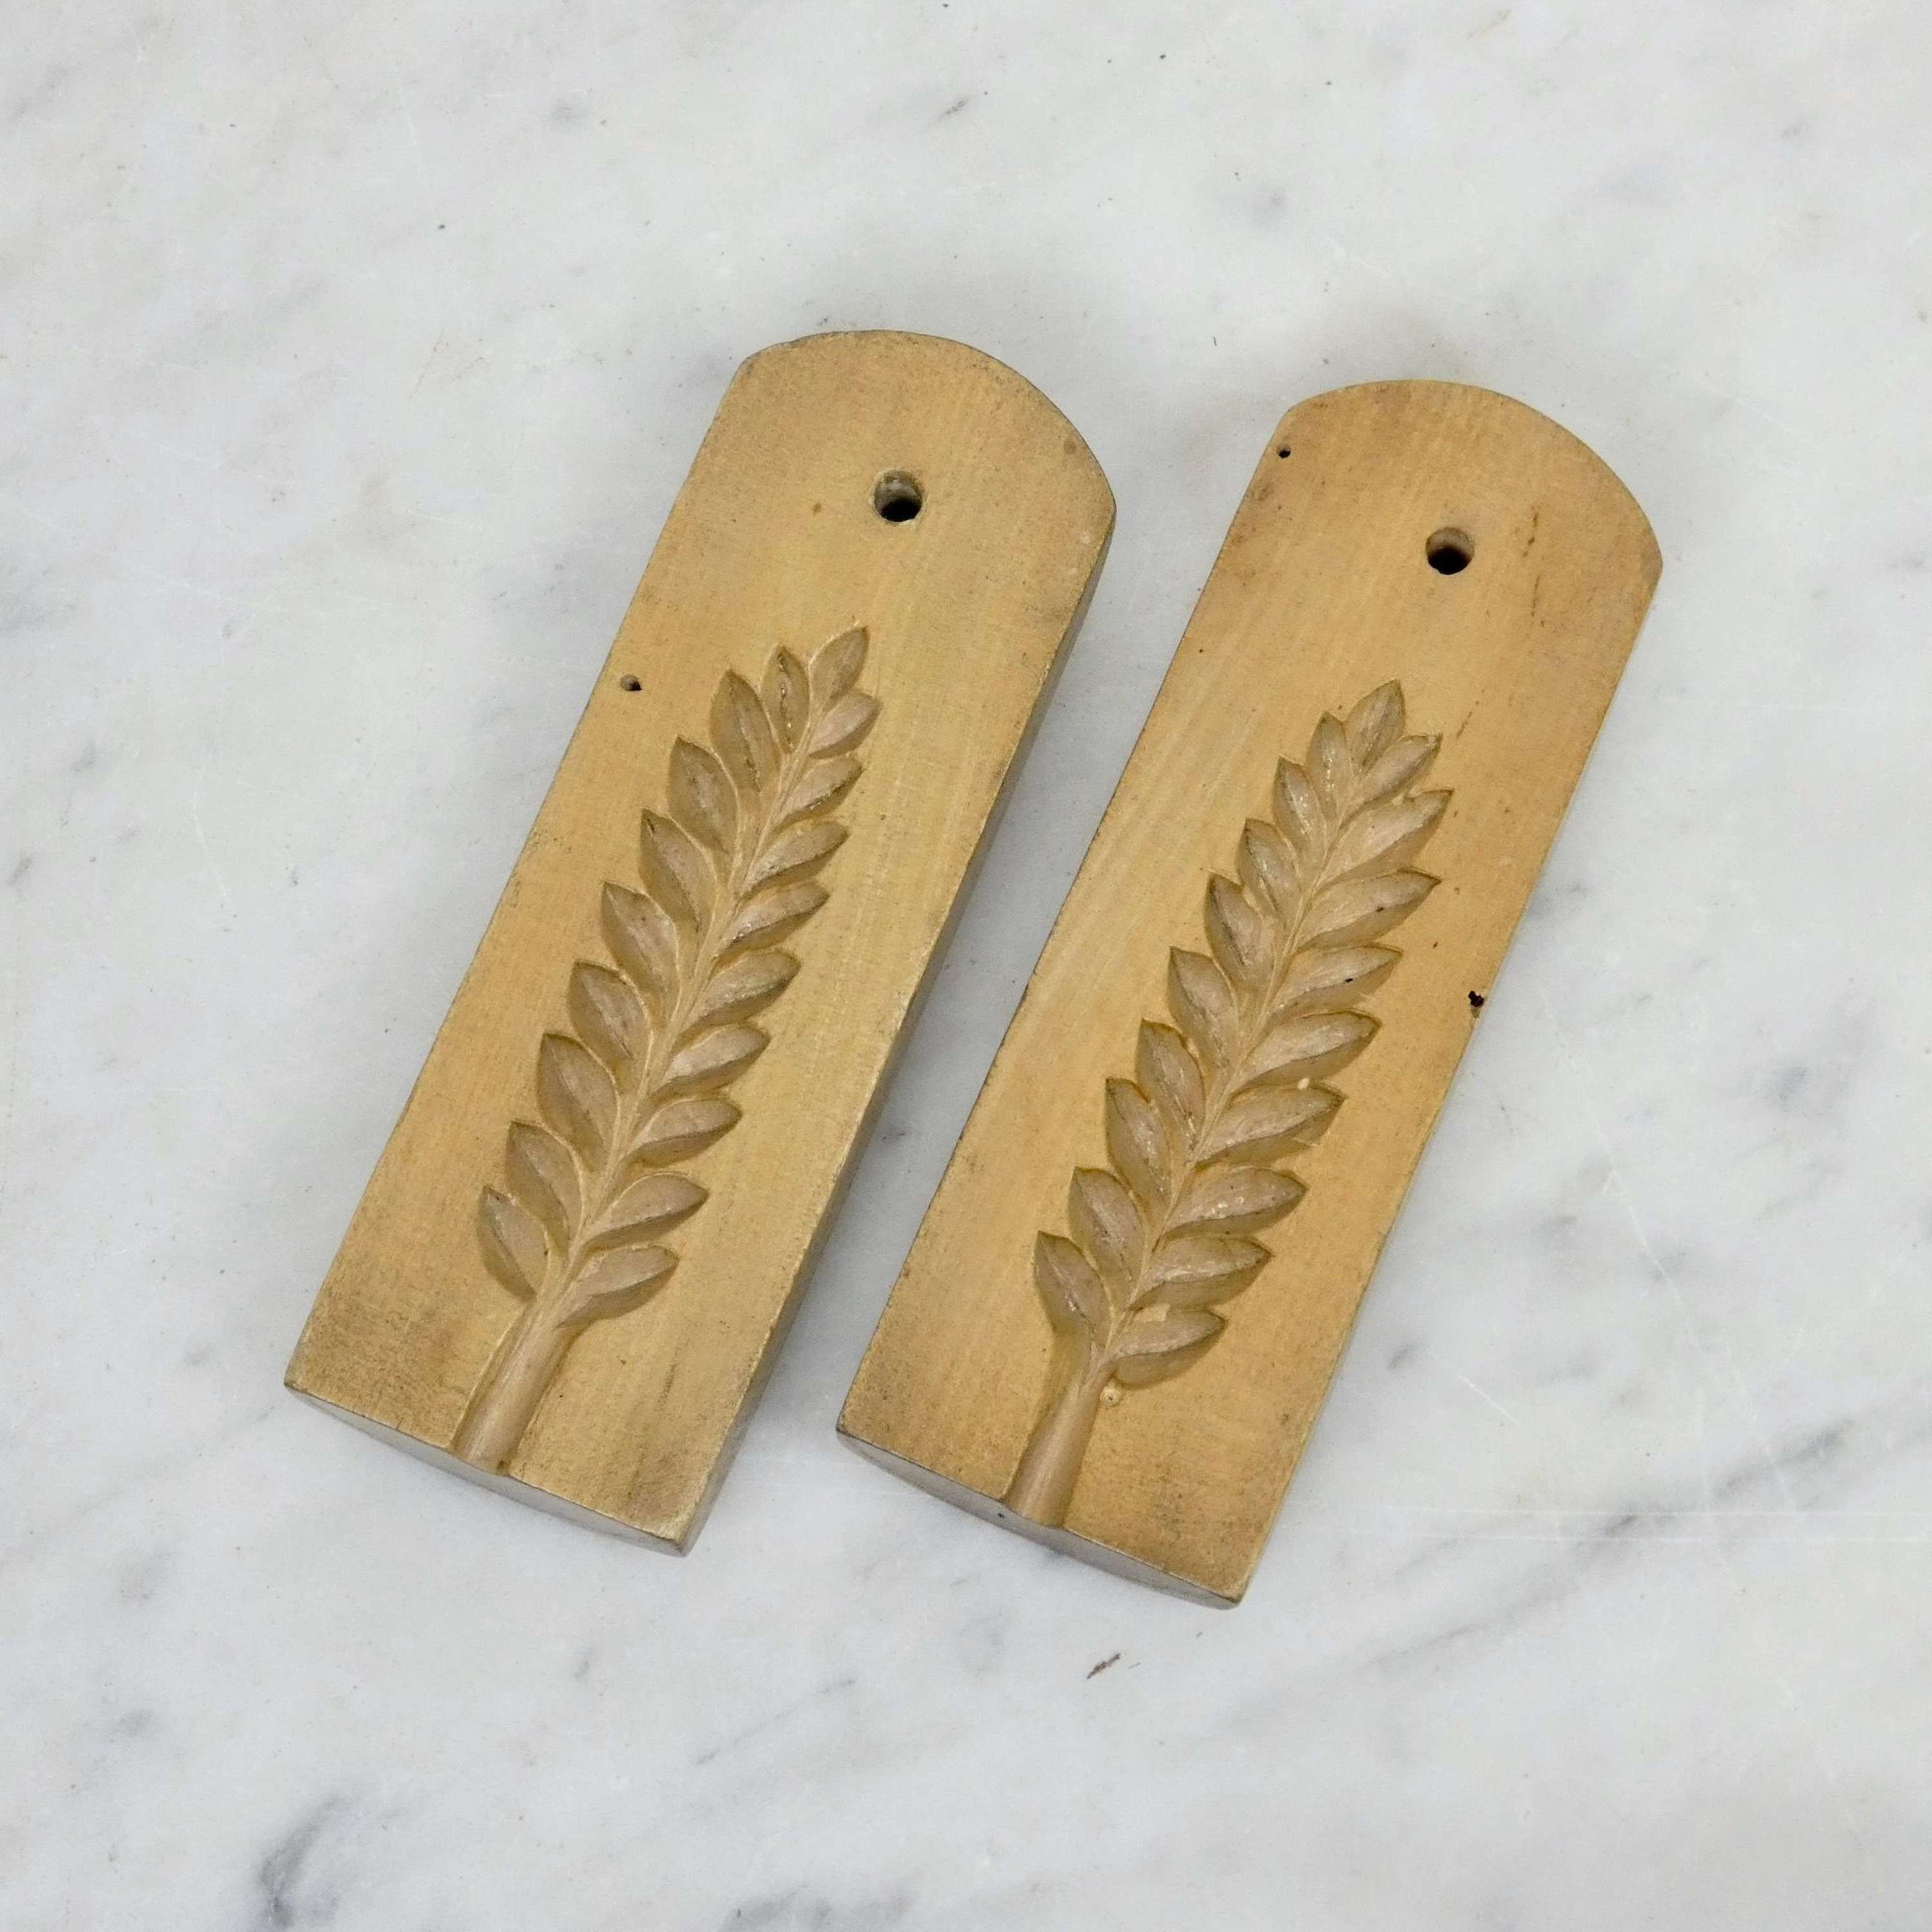 Wooden butter mould carved with a leaf